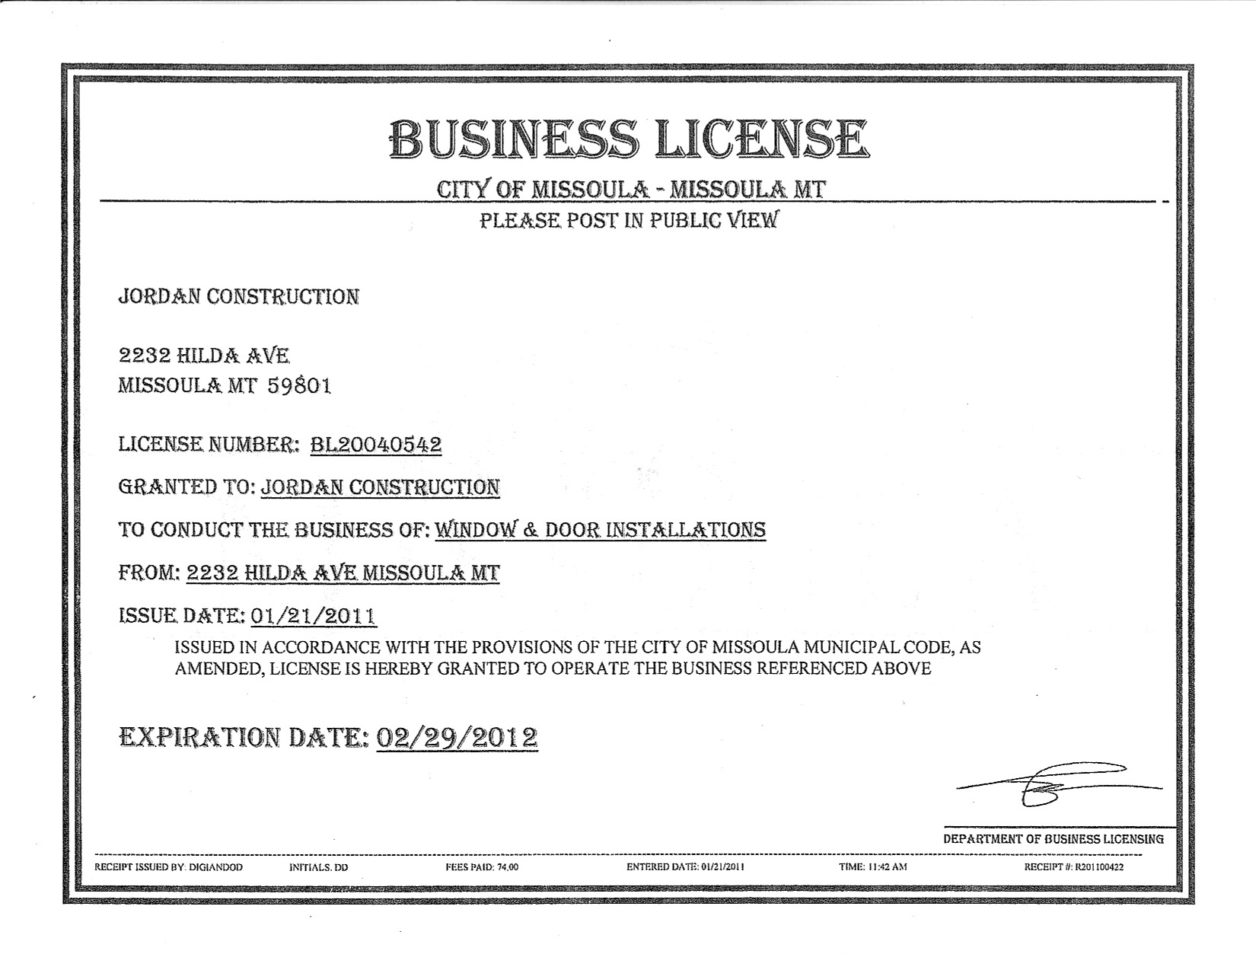 Business License Samples Spreadsheet Templates For Busines